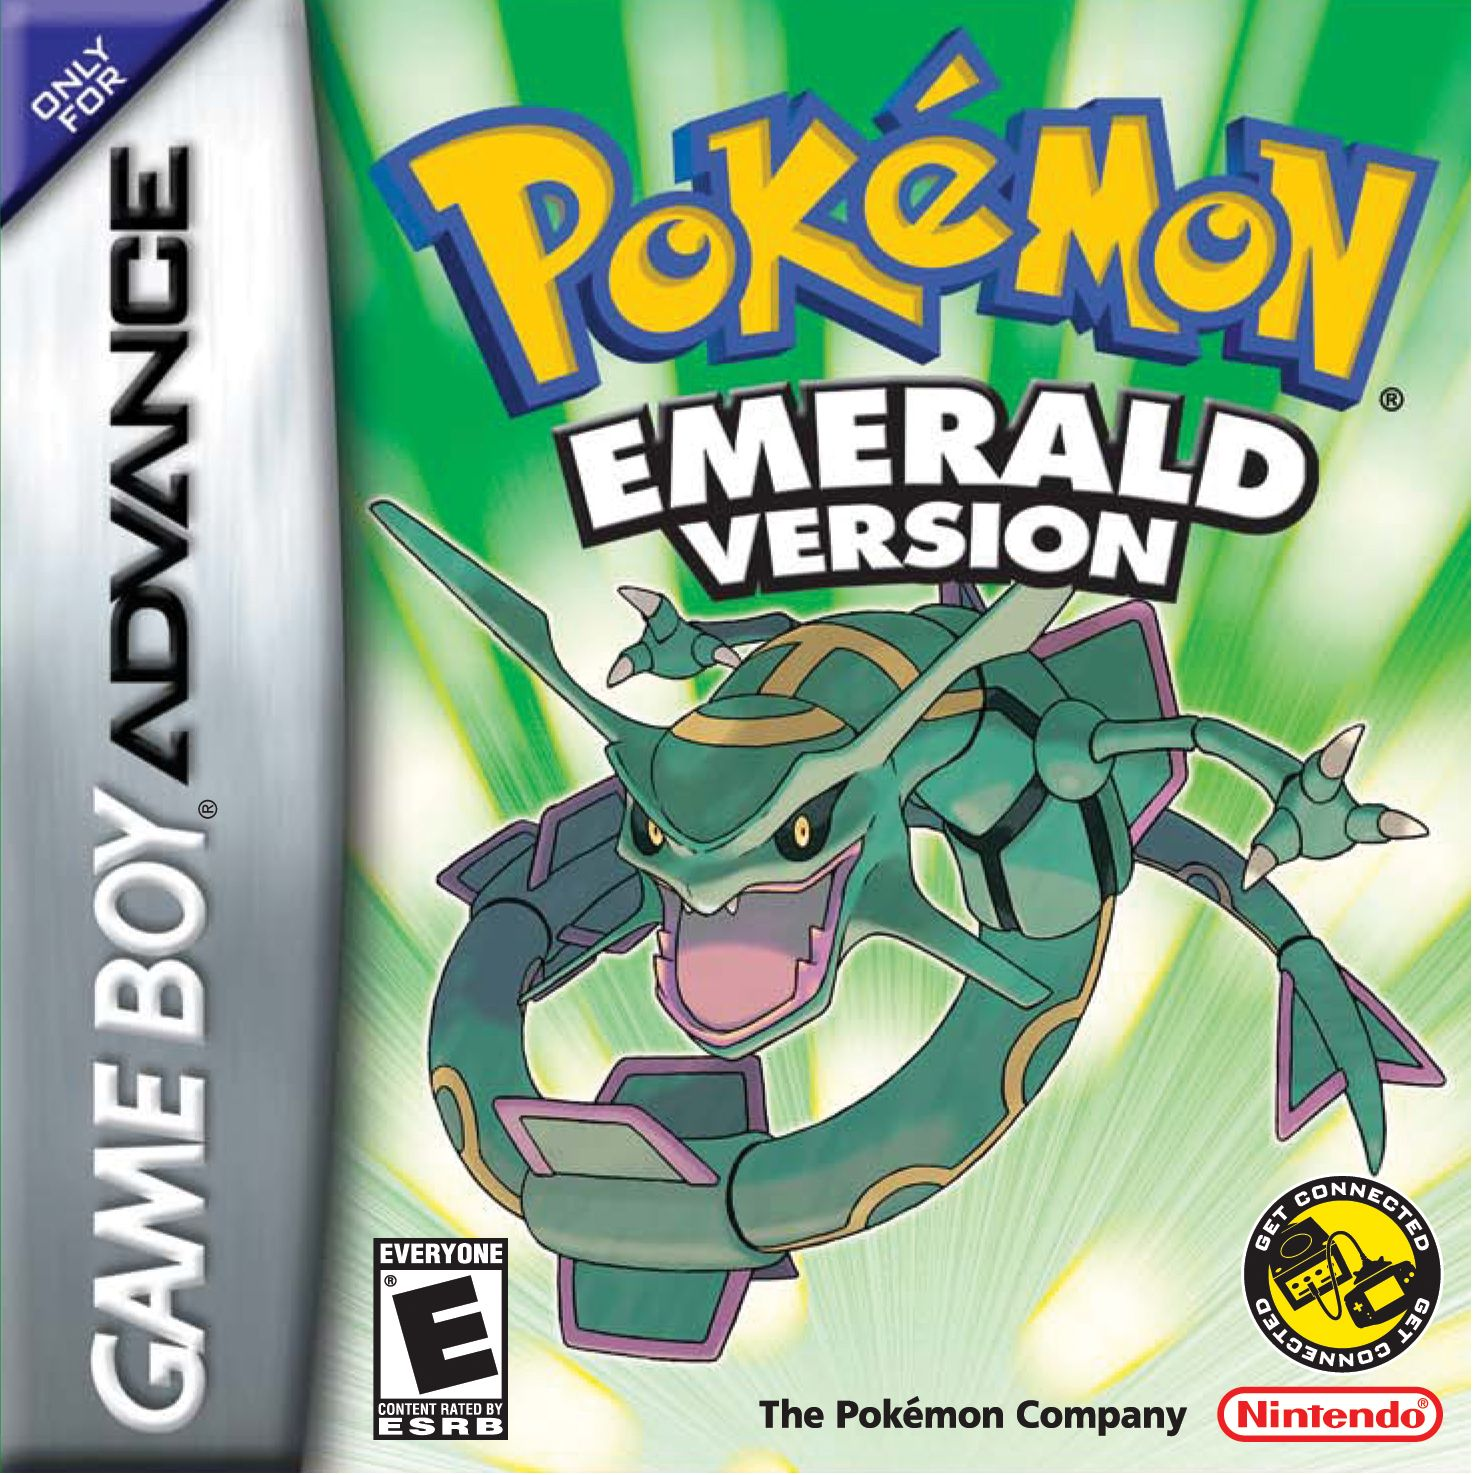 pokémon: emerald version, my 1st pokemon game :) | gotta catch 'em